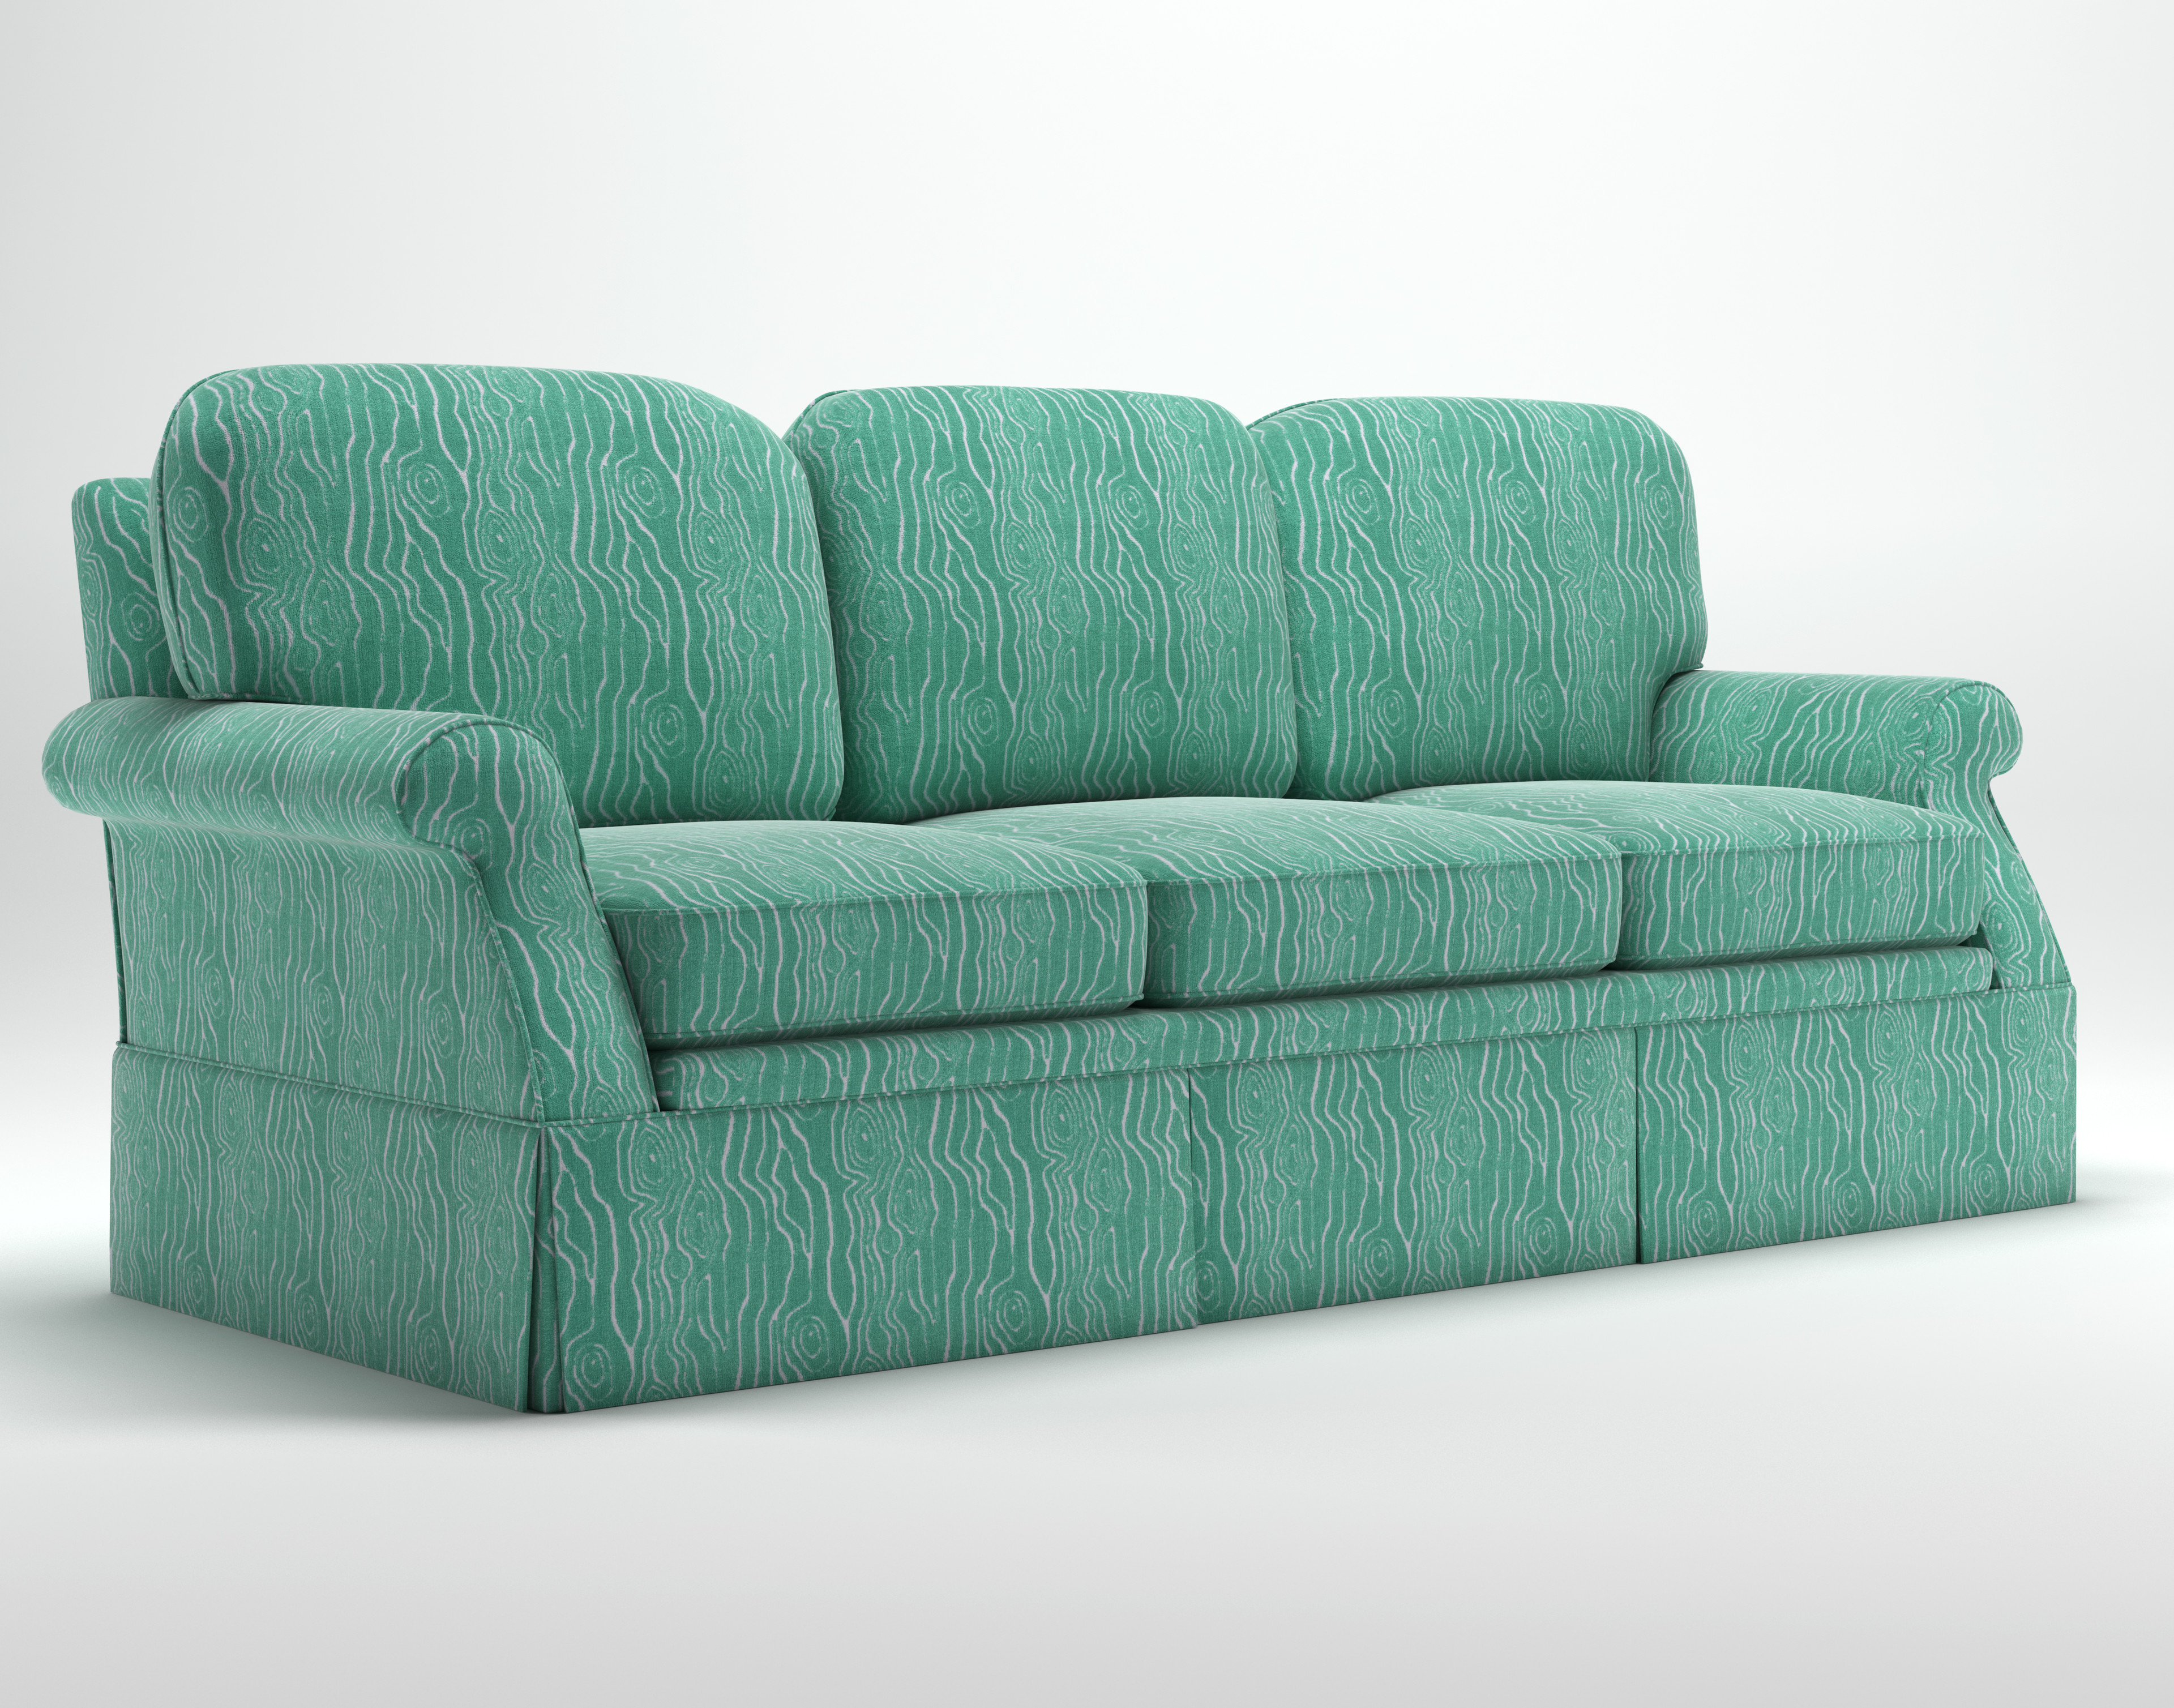 Sofa Style 2: Back cushion corners are more rounded off.